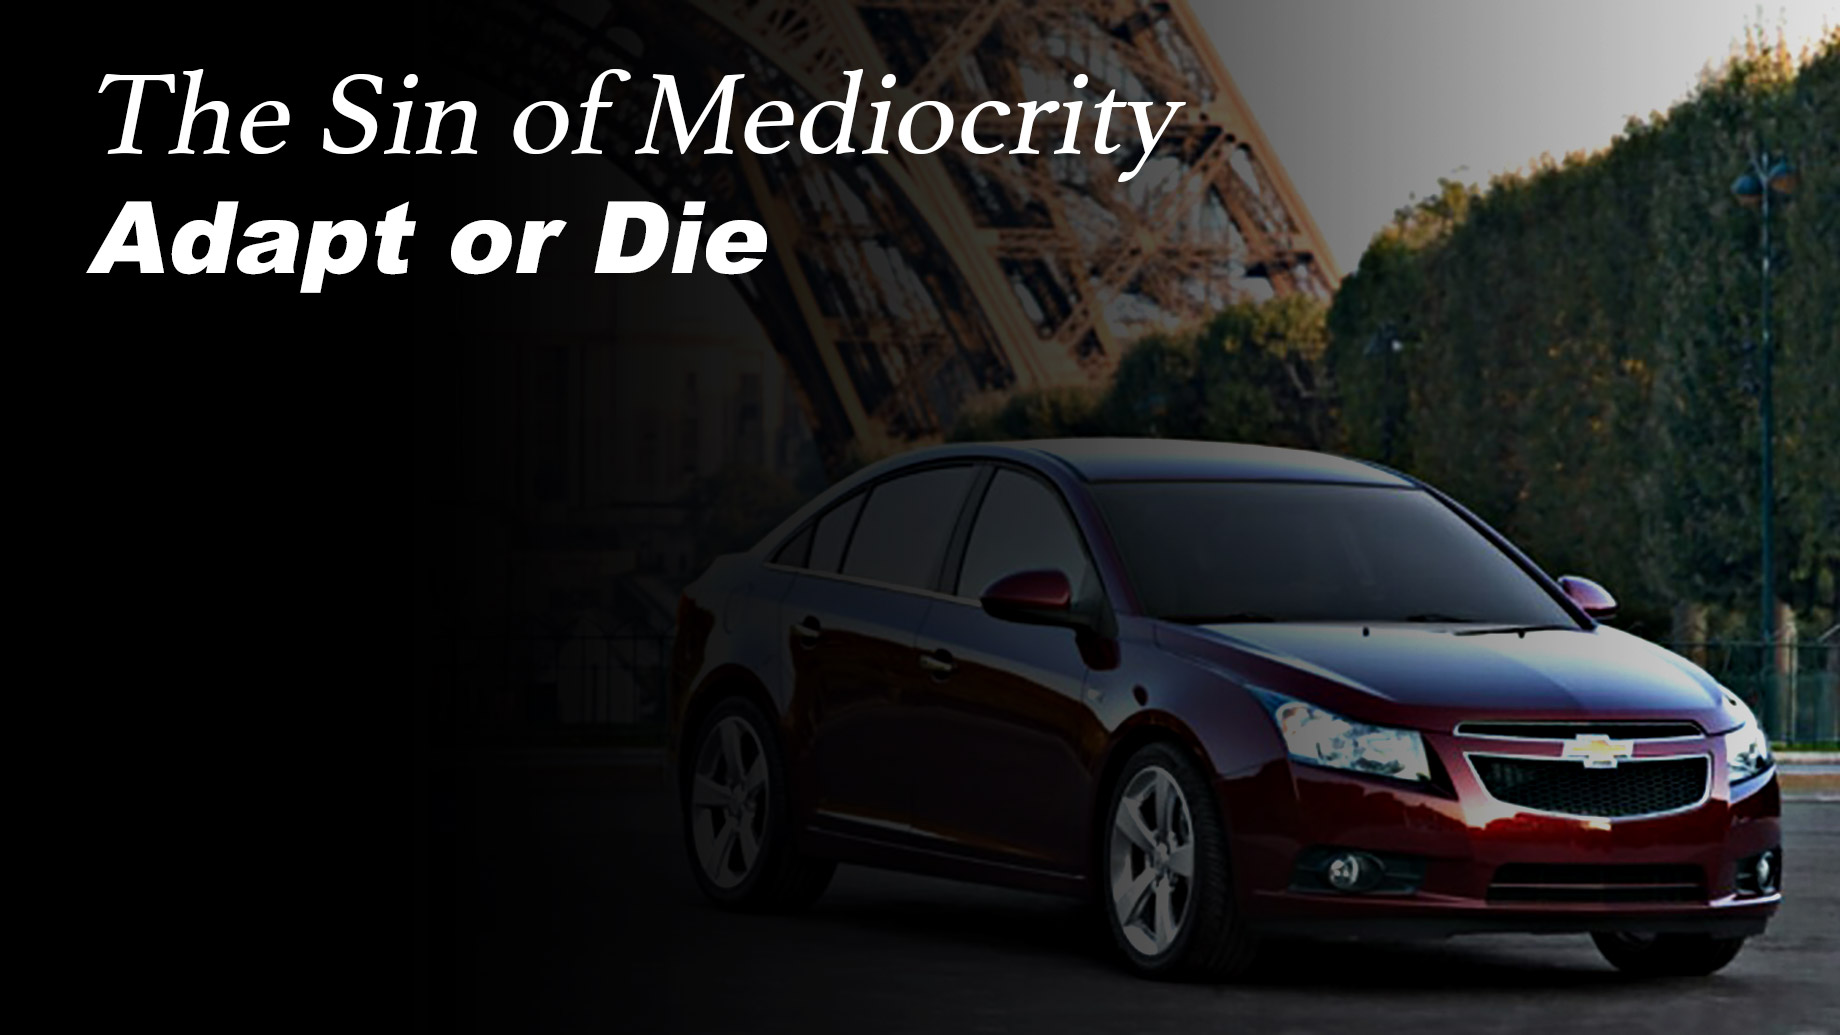 The Sin of Mediocrity - Adapt or Die